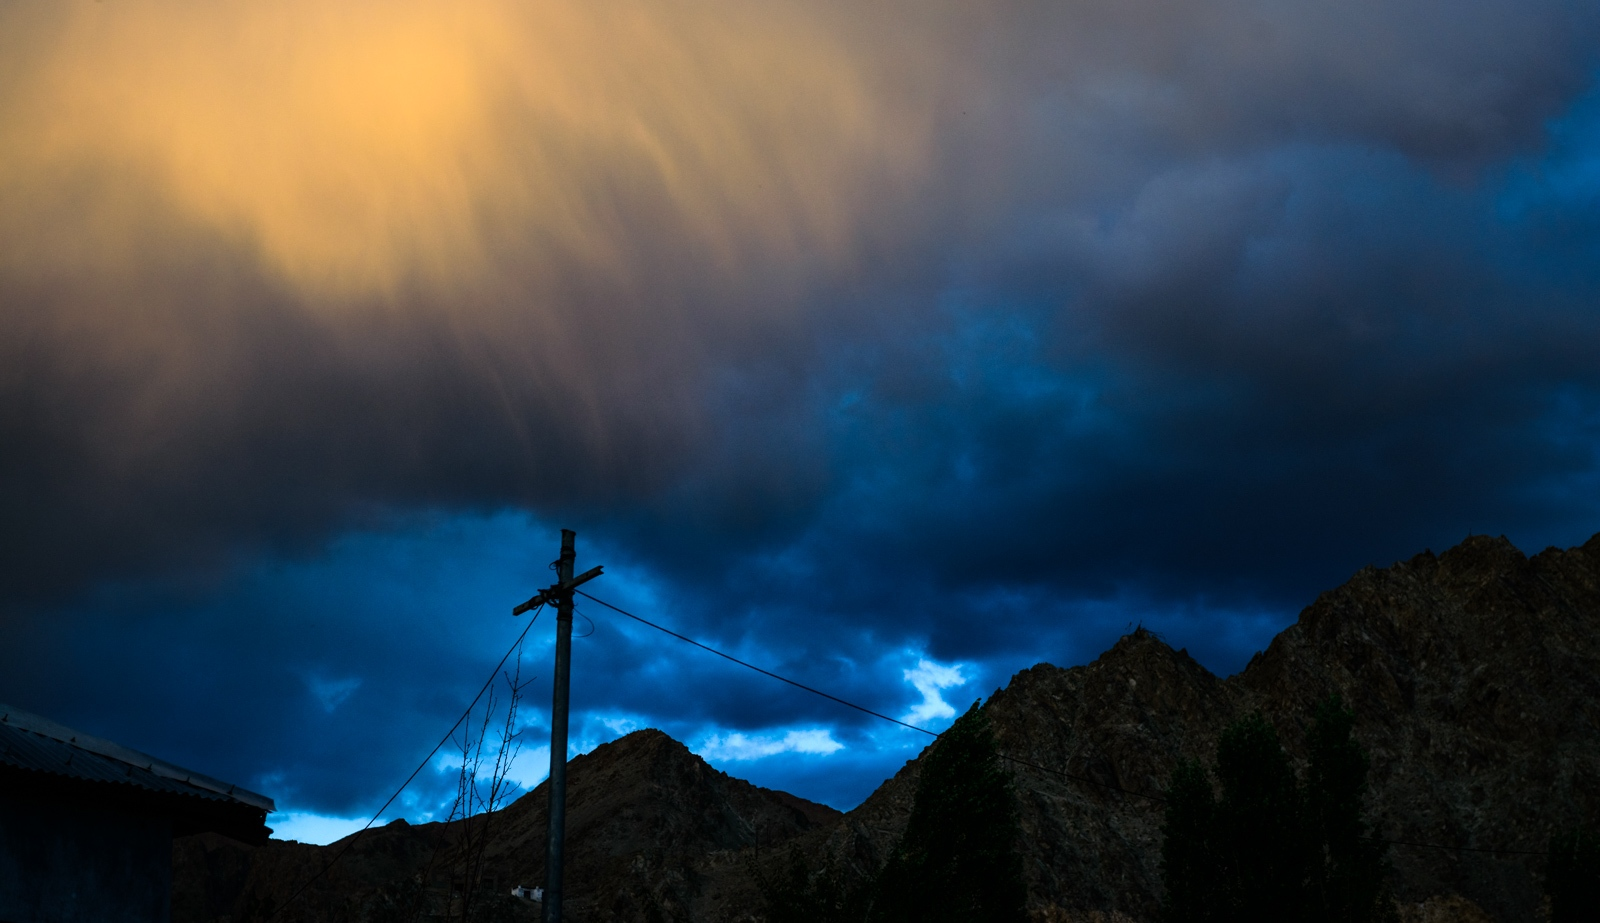 Dense rainclouds loom over the village of Choglomsar, Ladakh, where in 2010, a catastrophic 'cloudburst' event wiped out the entire town, claiming over 200 lives and causing major infrastructure damage all around the region.